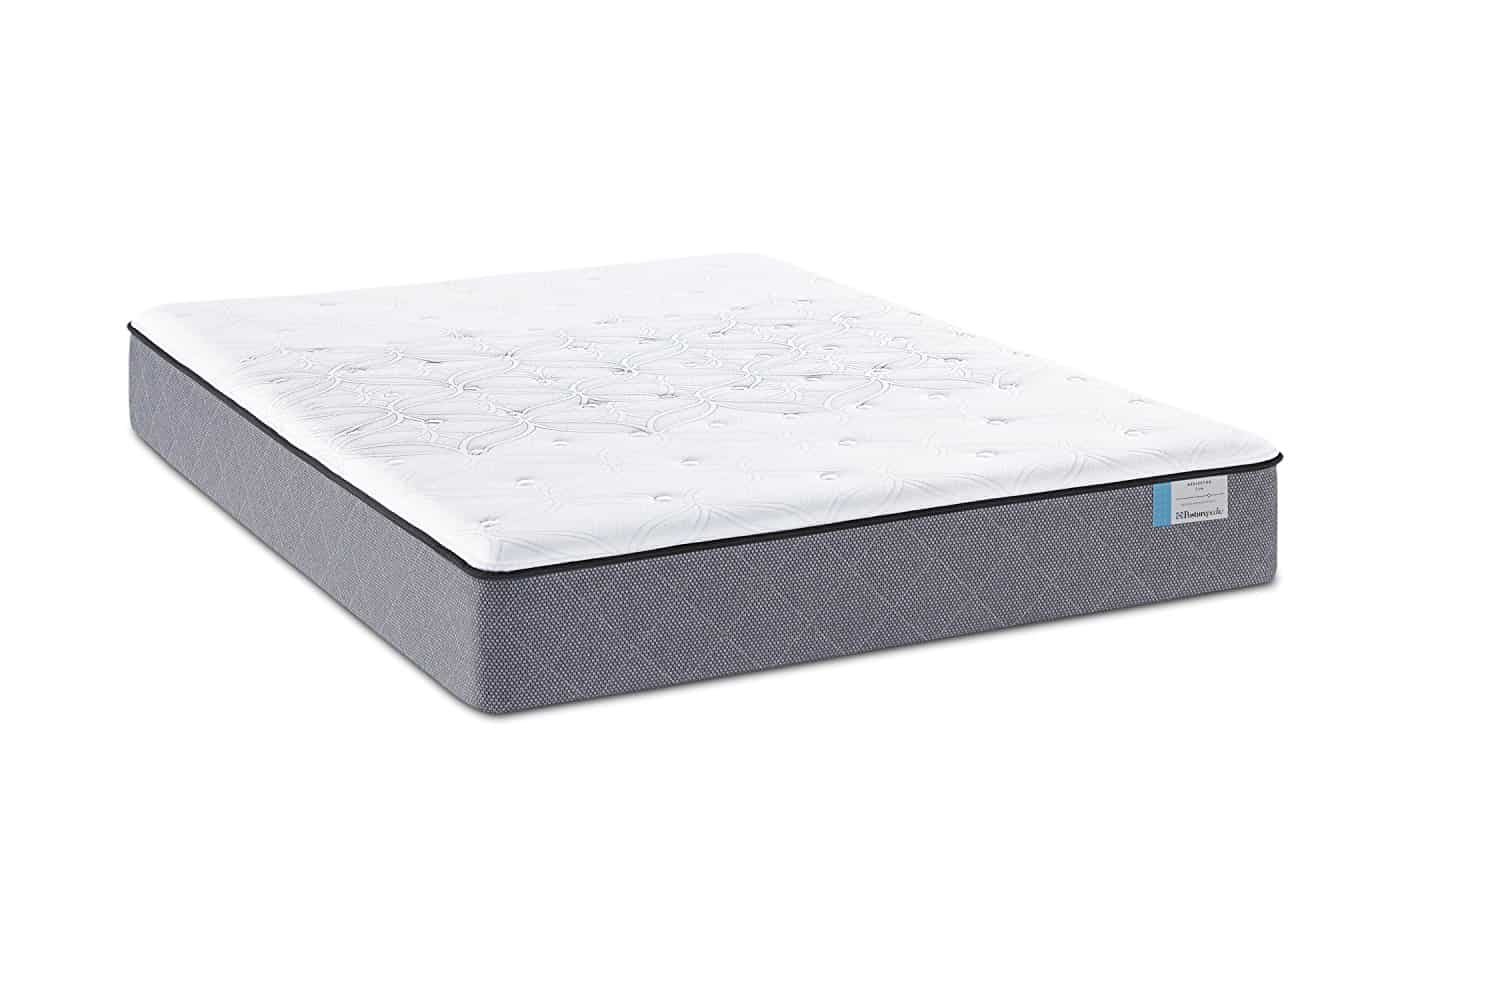 Sealy Posturepedic Drakesboro Firm Tight Top Mattress